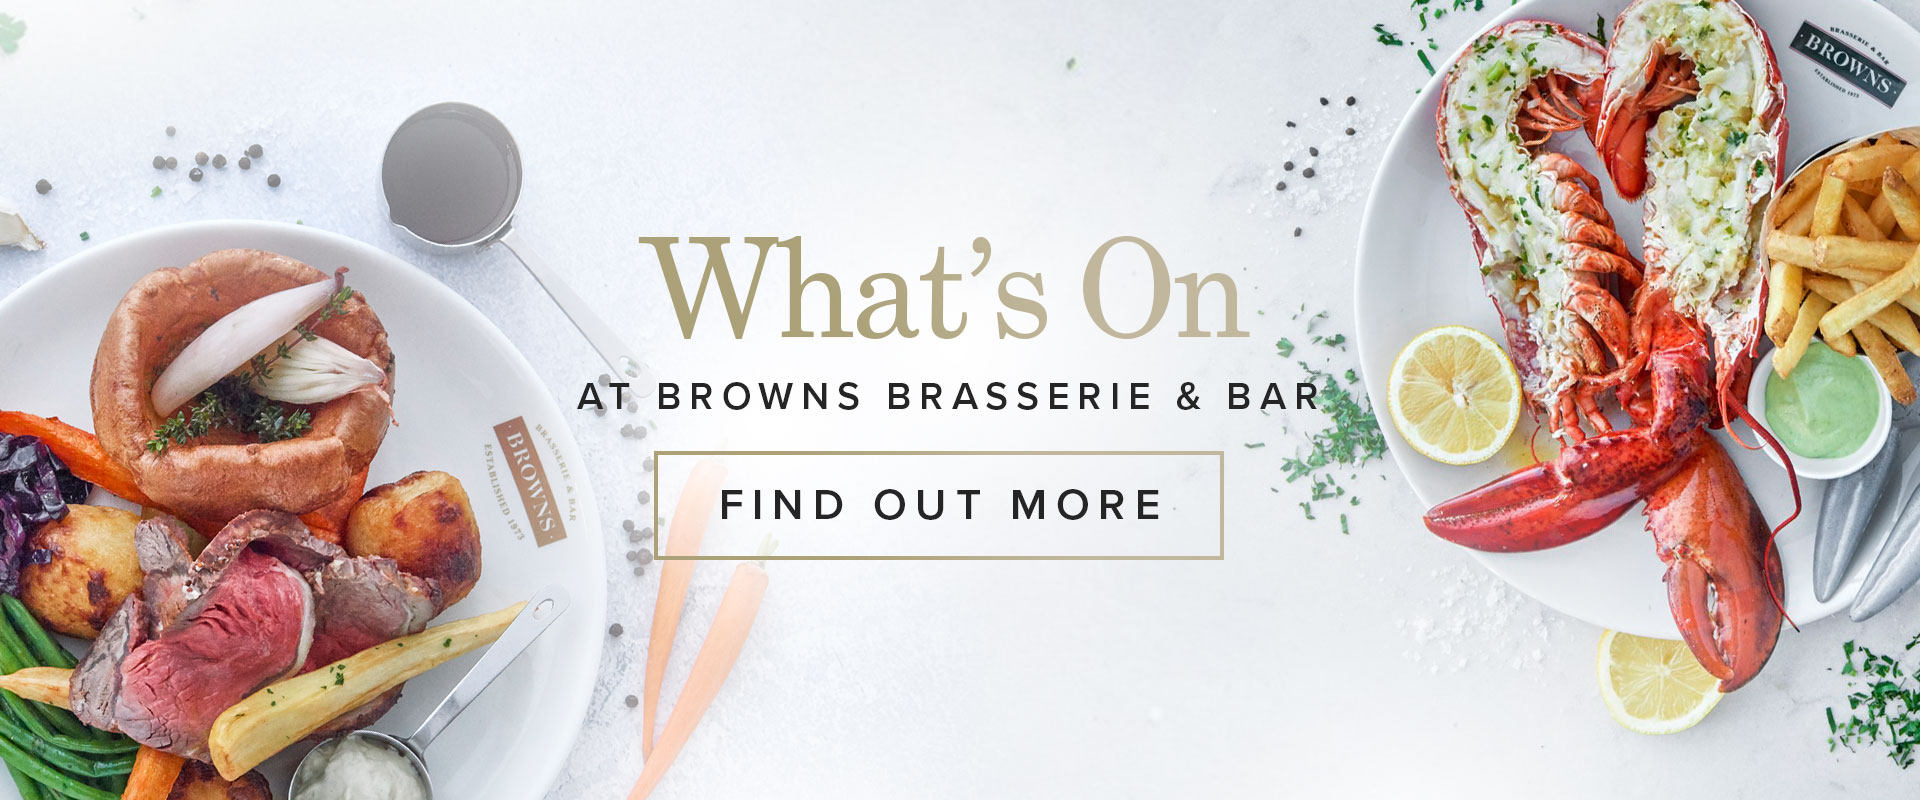 What's On at Browns Mayfair